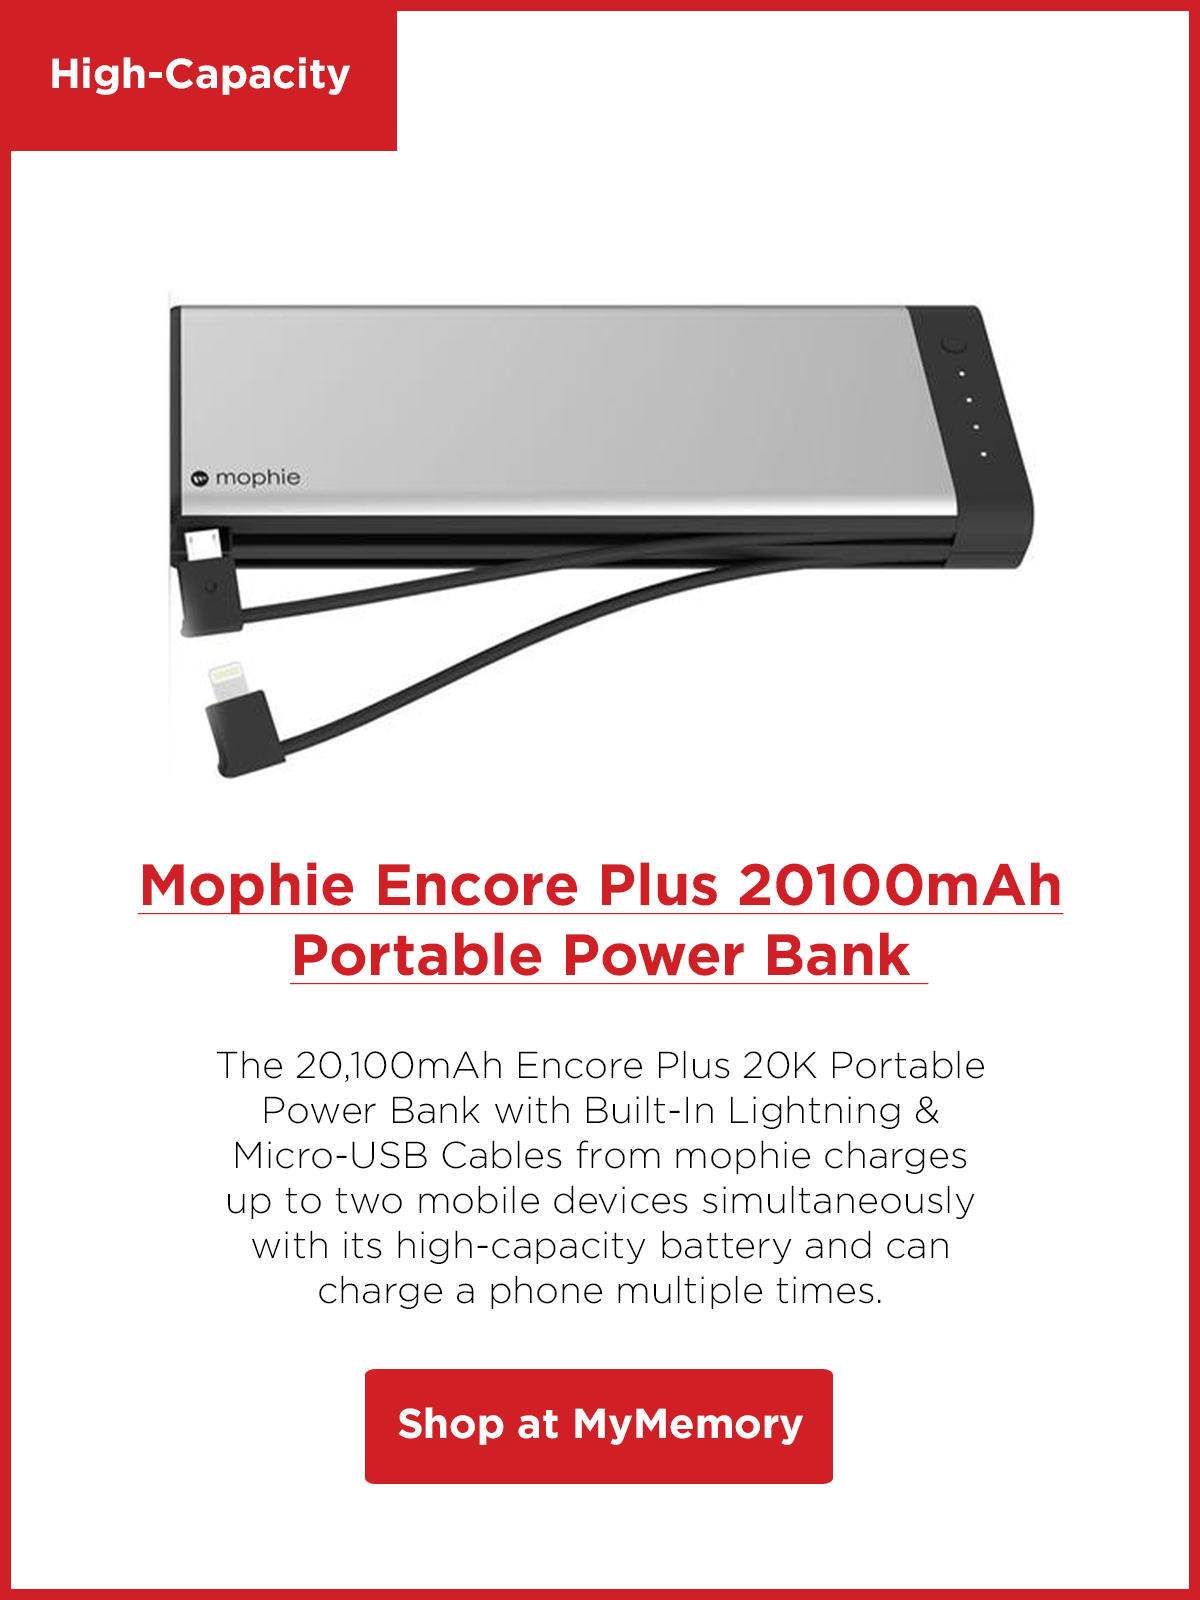 Mophie Encore Plus 20100mAh Portable Power Bank Built-In Lightning & Micro-USB Cables